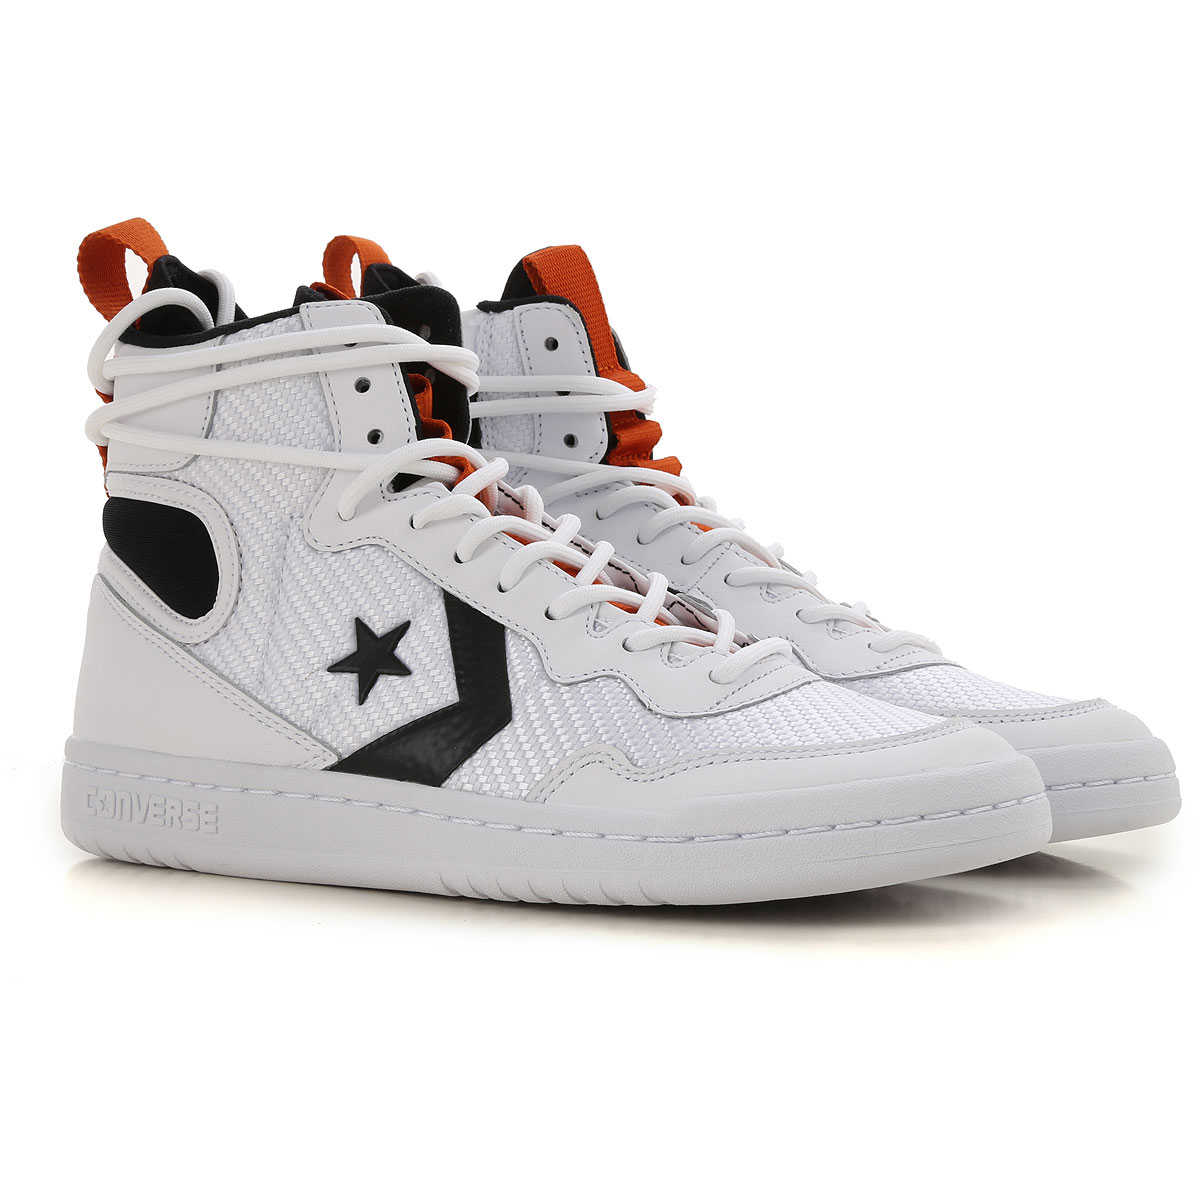 Converse Sneakers for Men, White